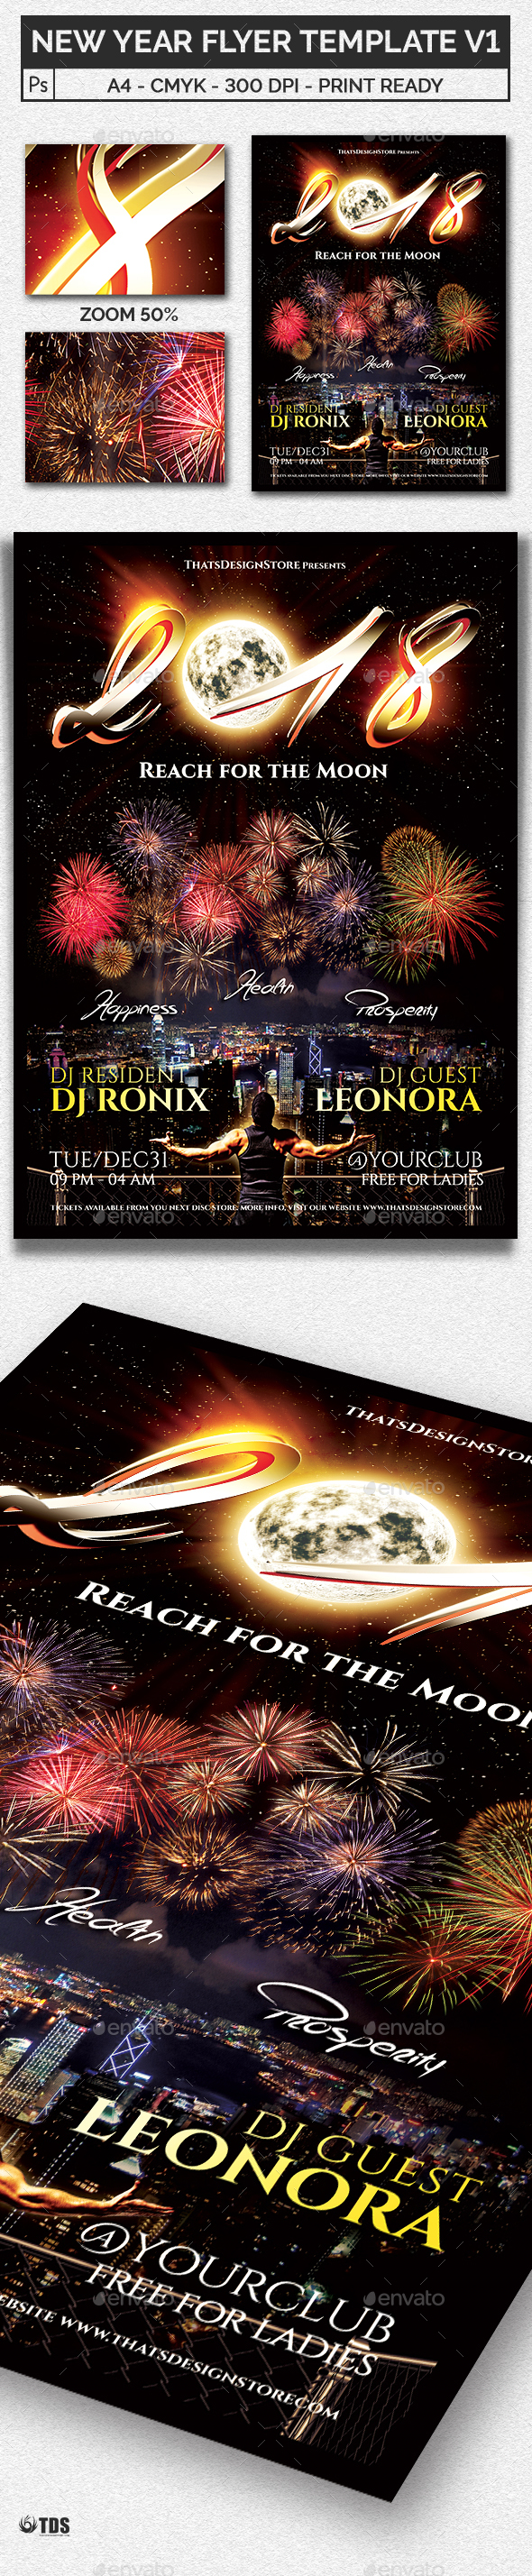 New Year Flyer Template V1